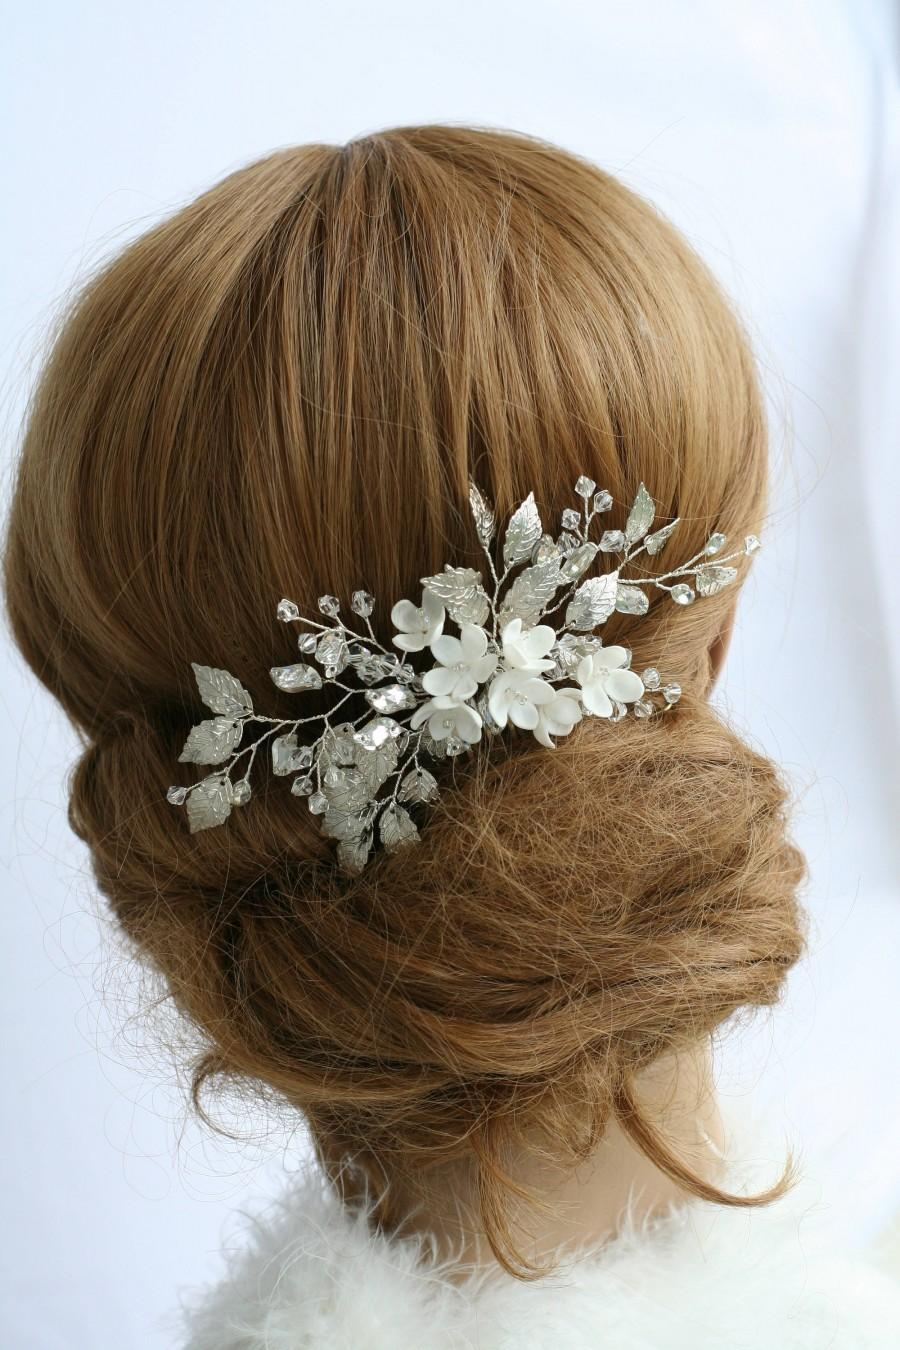 Wedding - Bridal hair comb Silver Bridal Hair comb Wedding hair comb Flower bridal comb Bridal hair accessories Silver Wedding accessories Silver - $69.99 USD